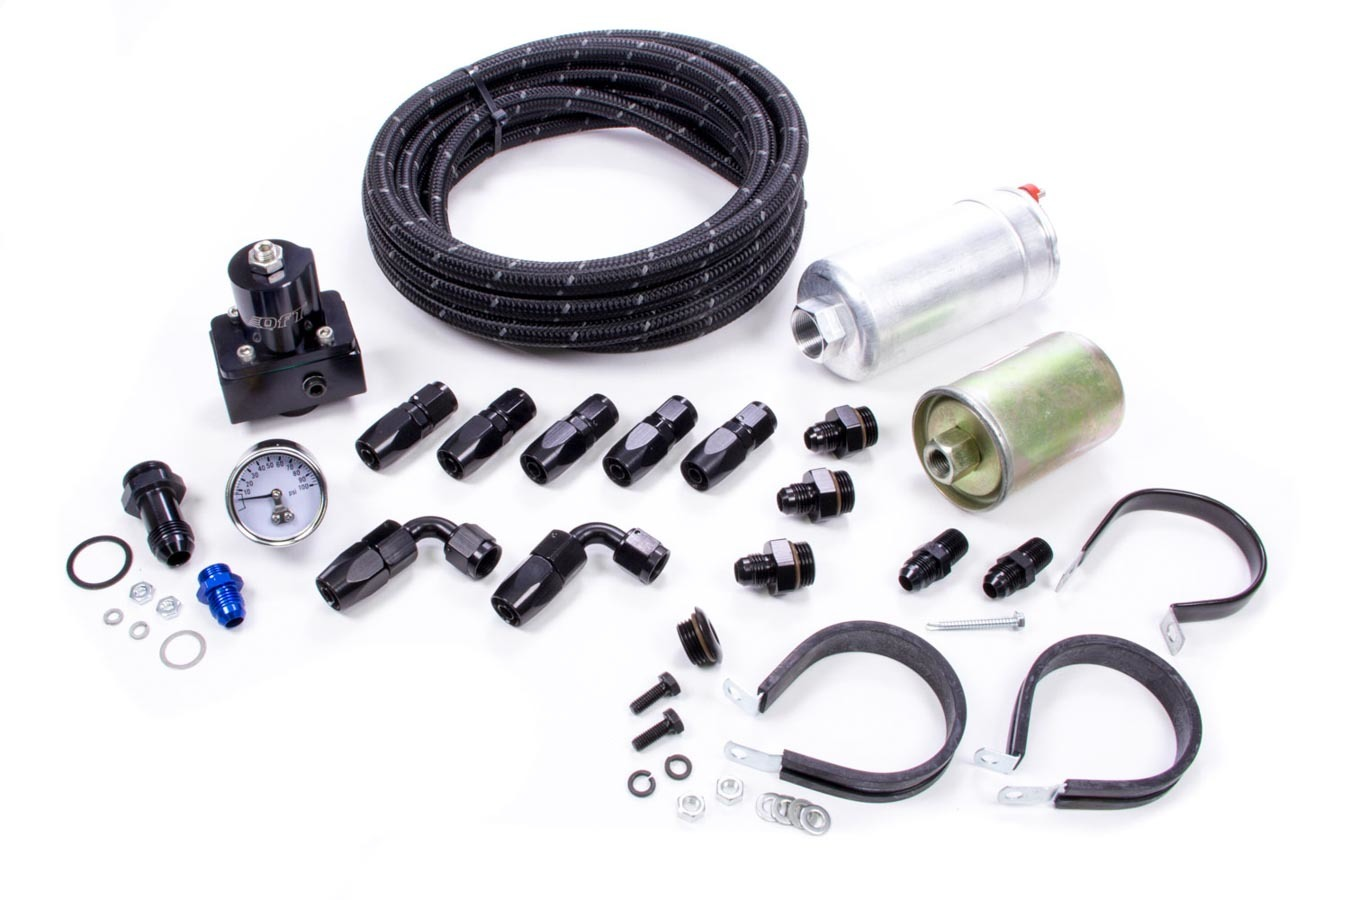 Quick Fuel Technology QFI-502 Fuel System, QFI, Braided Nylon Hose/Filters/Fittings/Pump/Regulator, 6 AN, Black/Silver, Kit